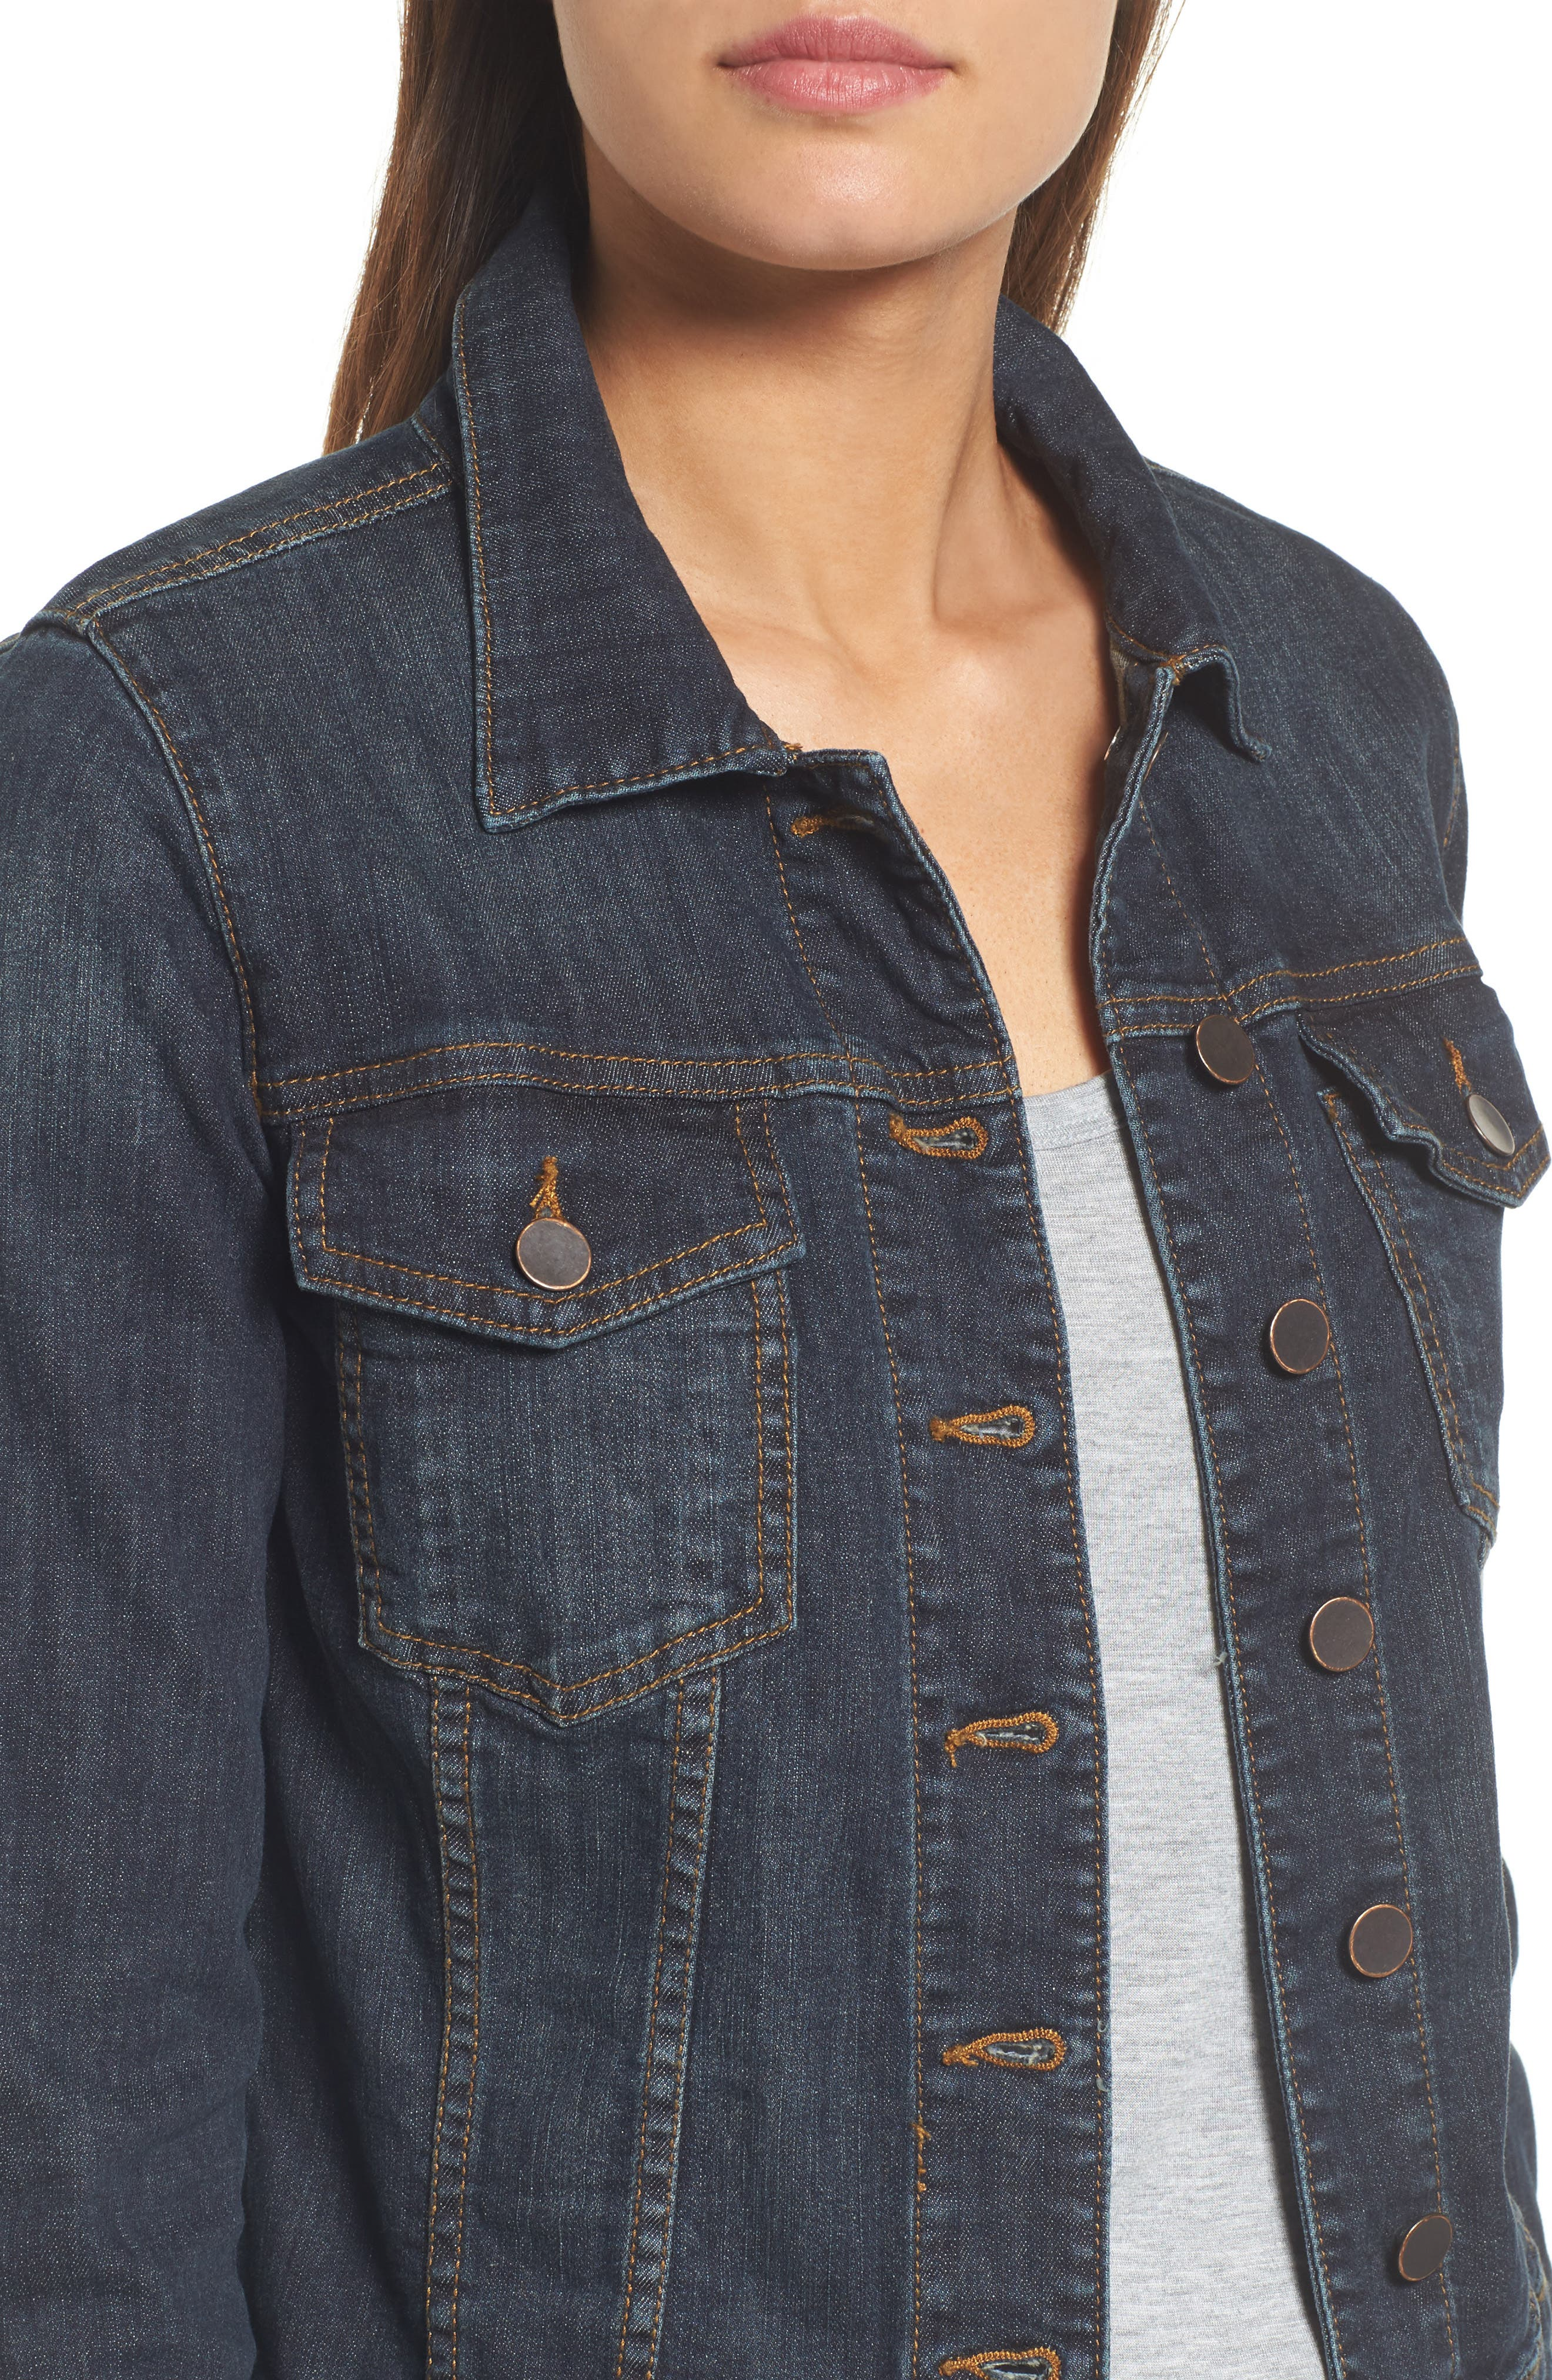 'Helena' Denim Jacket,                             Alternate thumbnail 20, color,